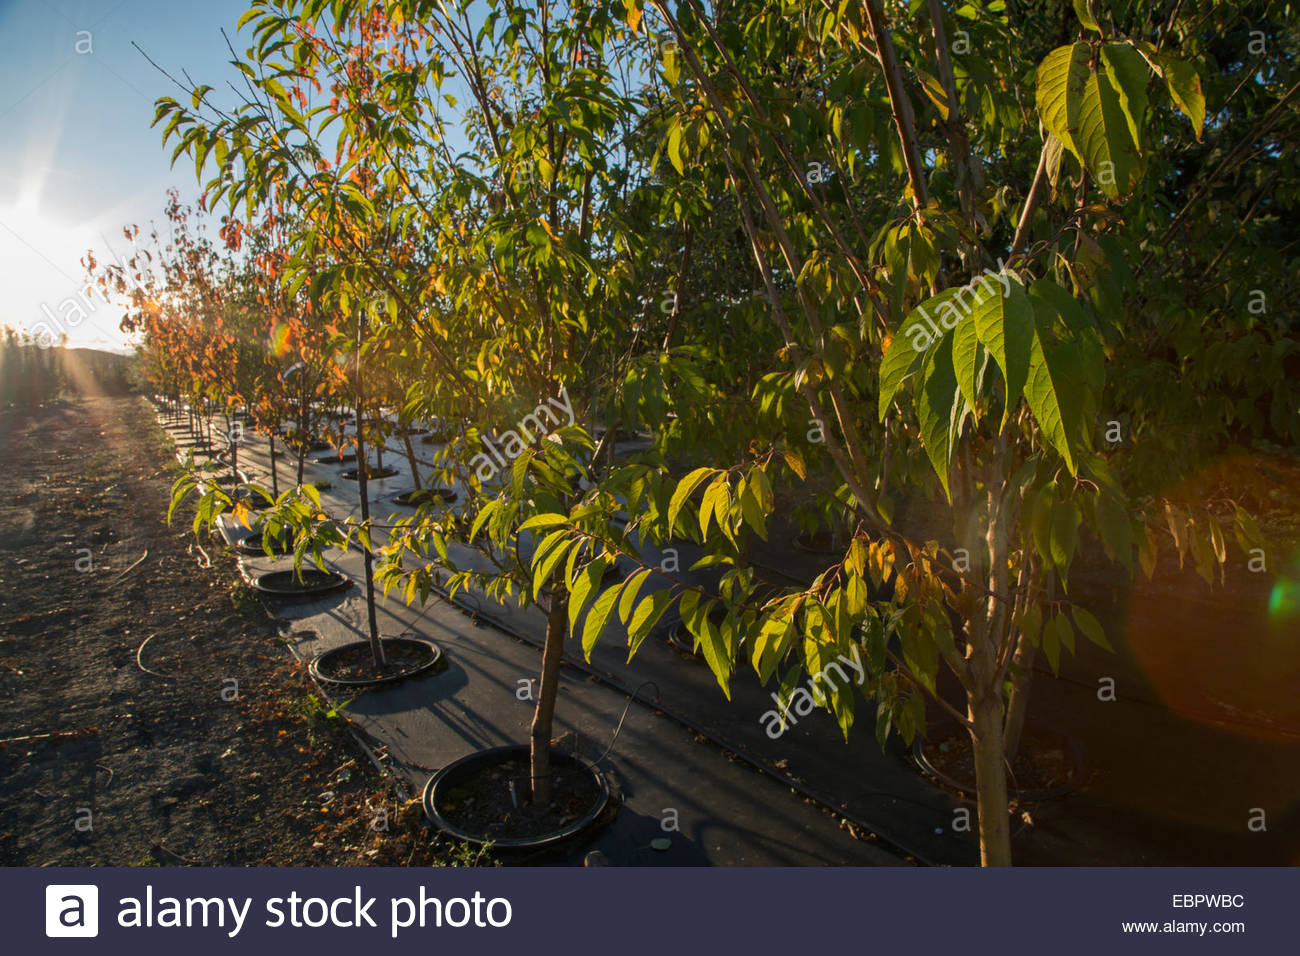 Sun shining along young potted trees - Stock Image